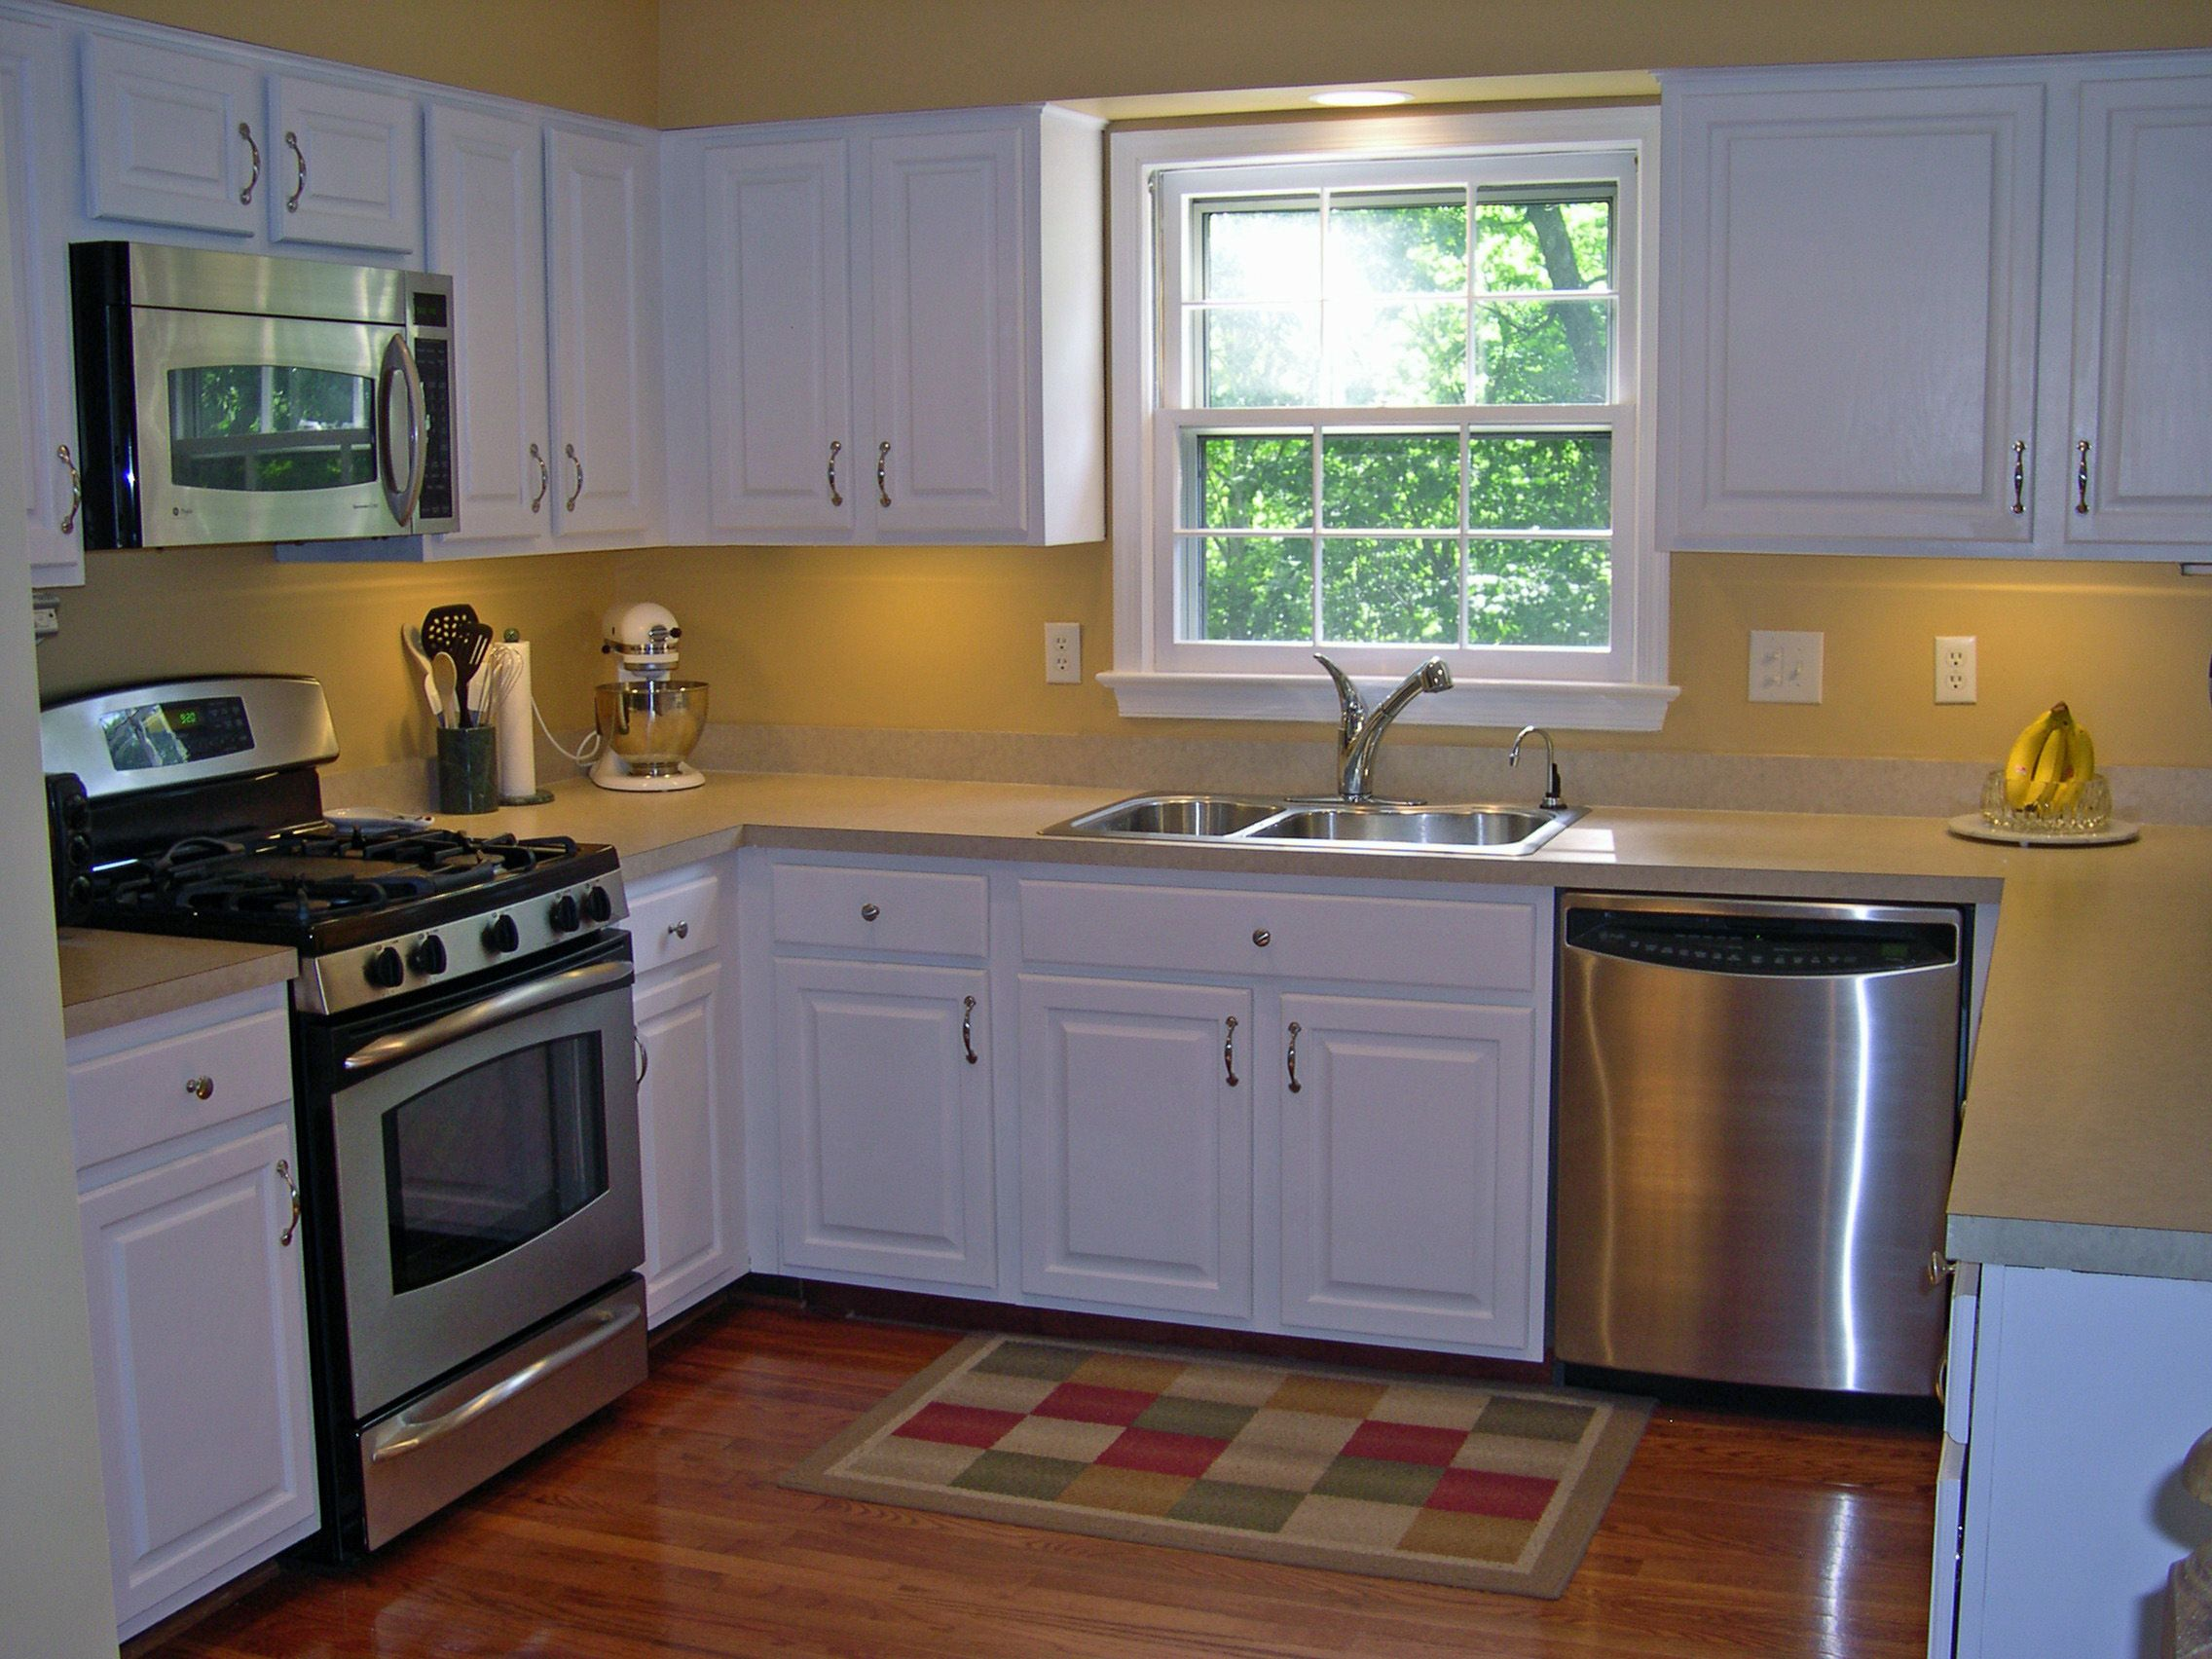 Kitchen Ideas For Small Kitchens Small Kitchen Remodeling Ideas  Small Kitchen Remodel Ideas